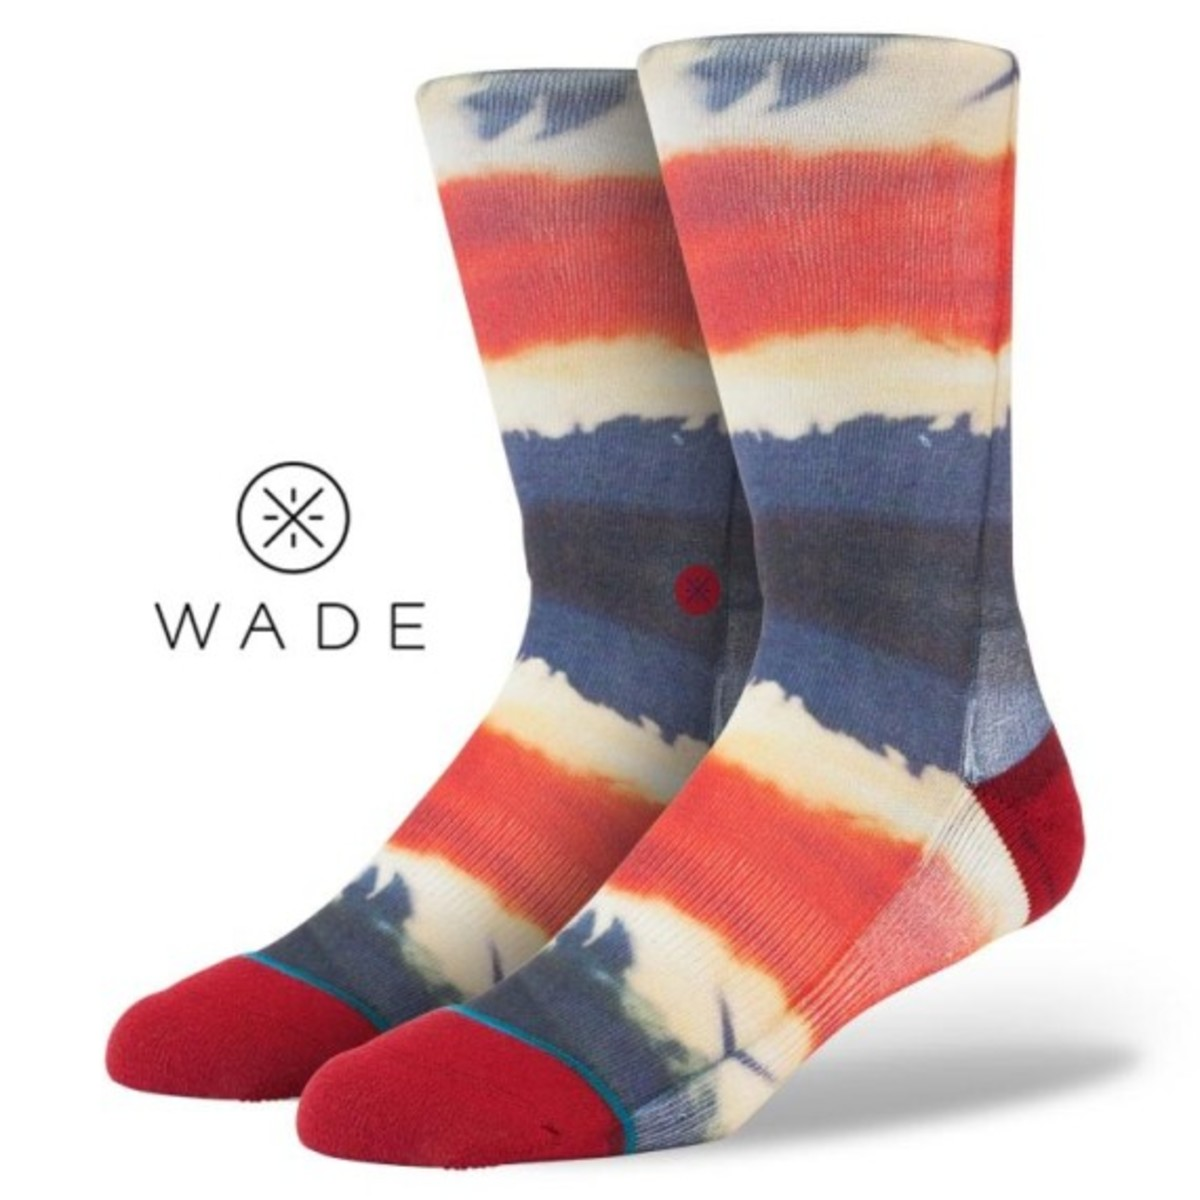 Dwyane Wade x Stance Socks – Summer 2014 Collection - 10